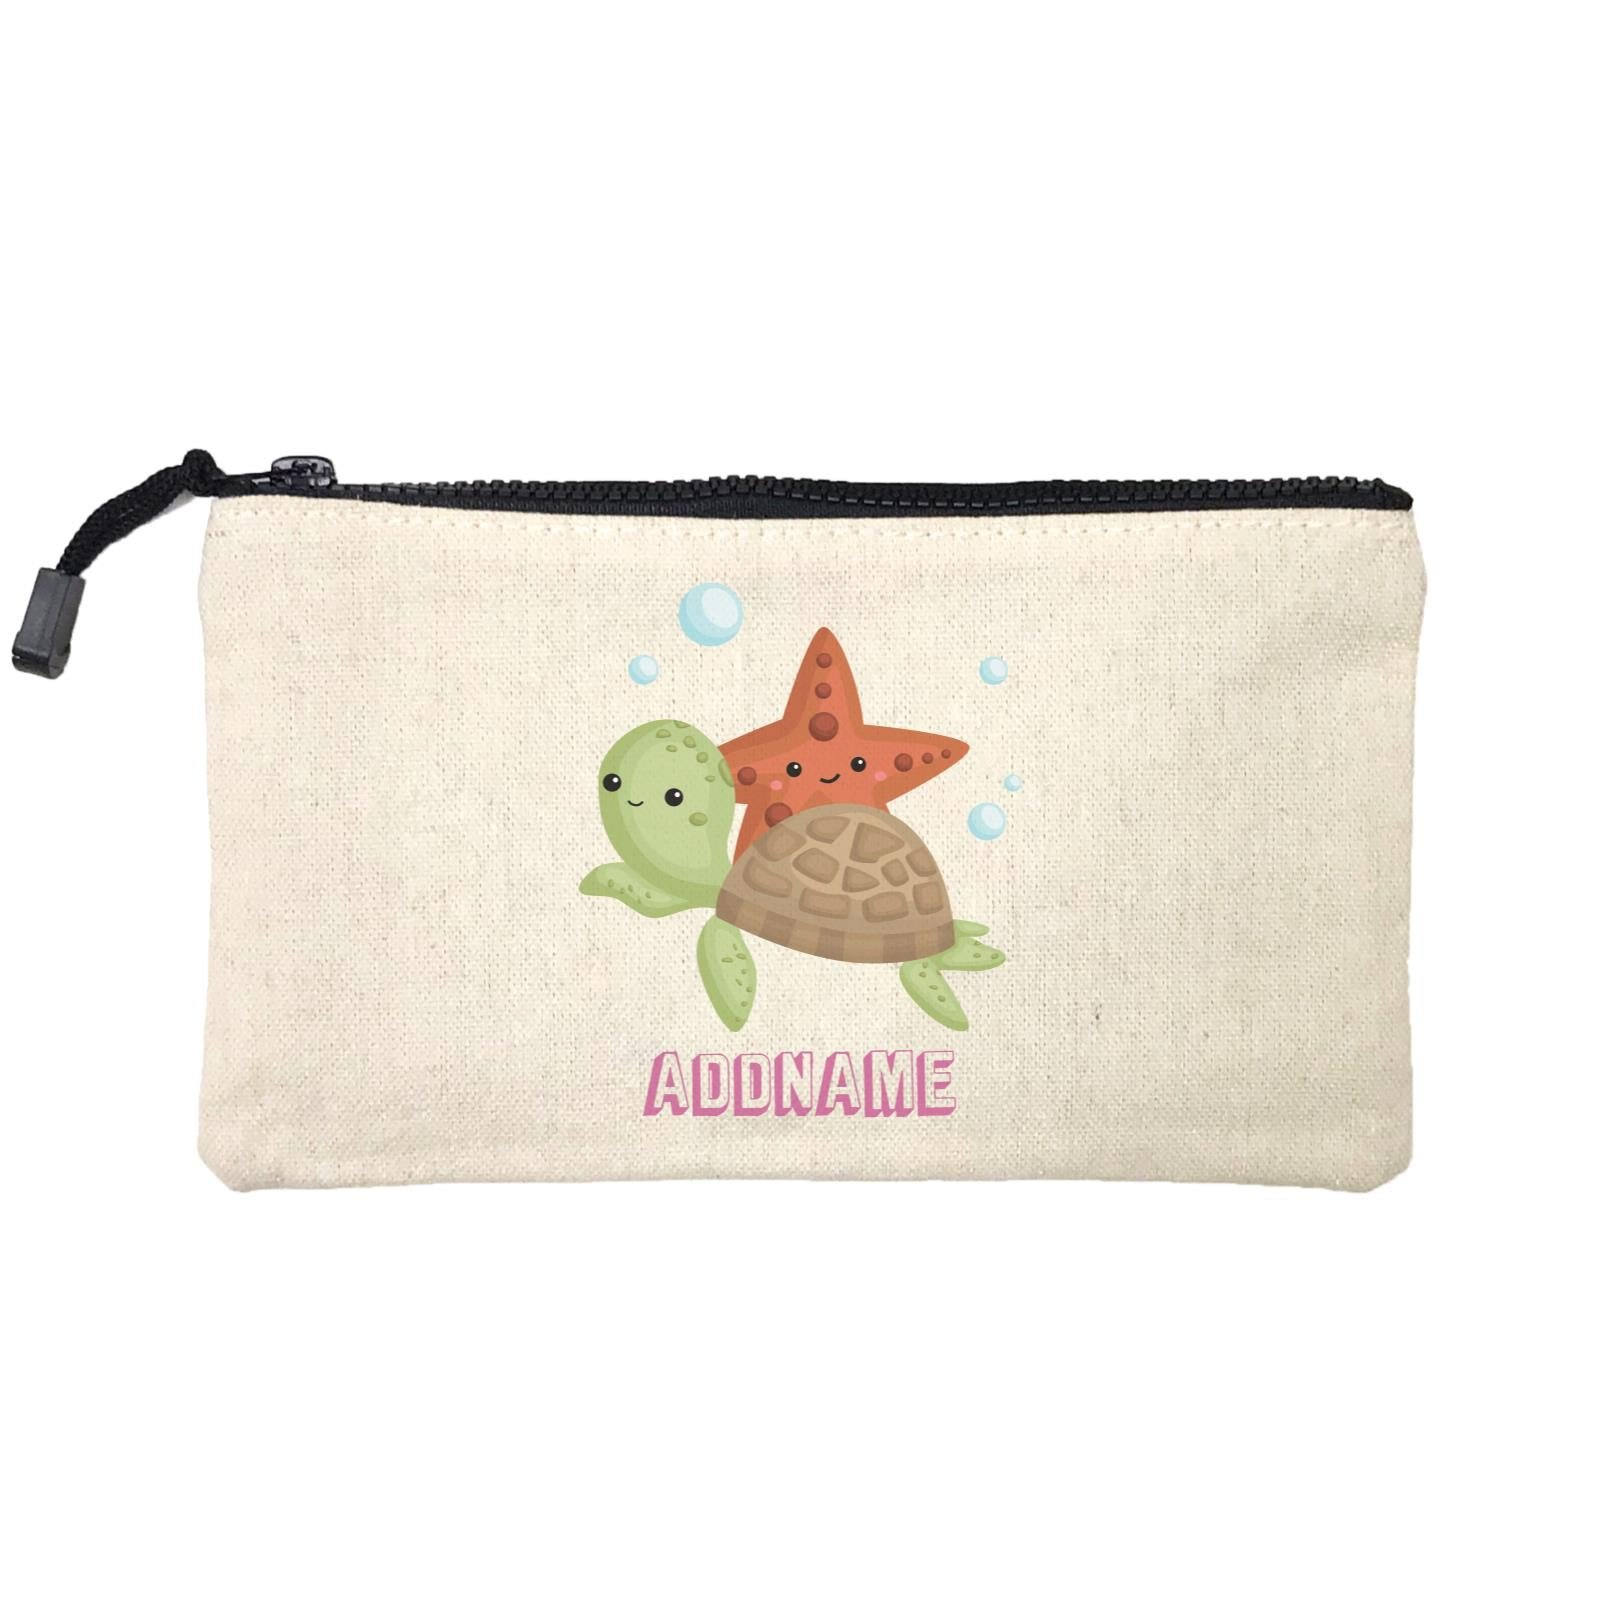 Birthday Mermaid Turtle And Starfish Addname Mini Accessories Stationery Pouch